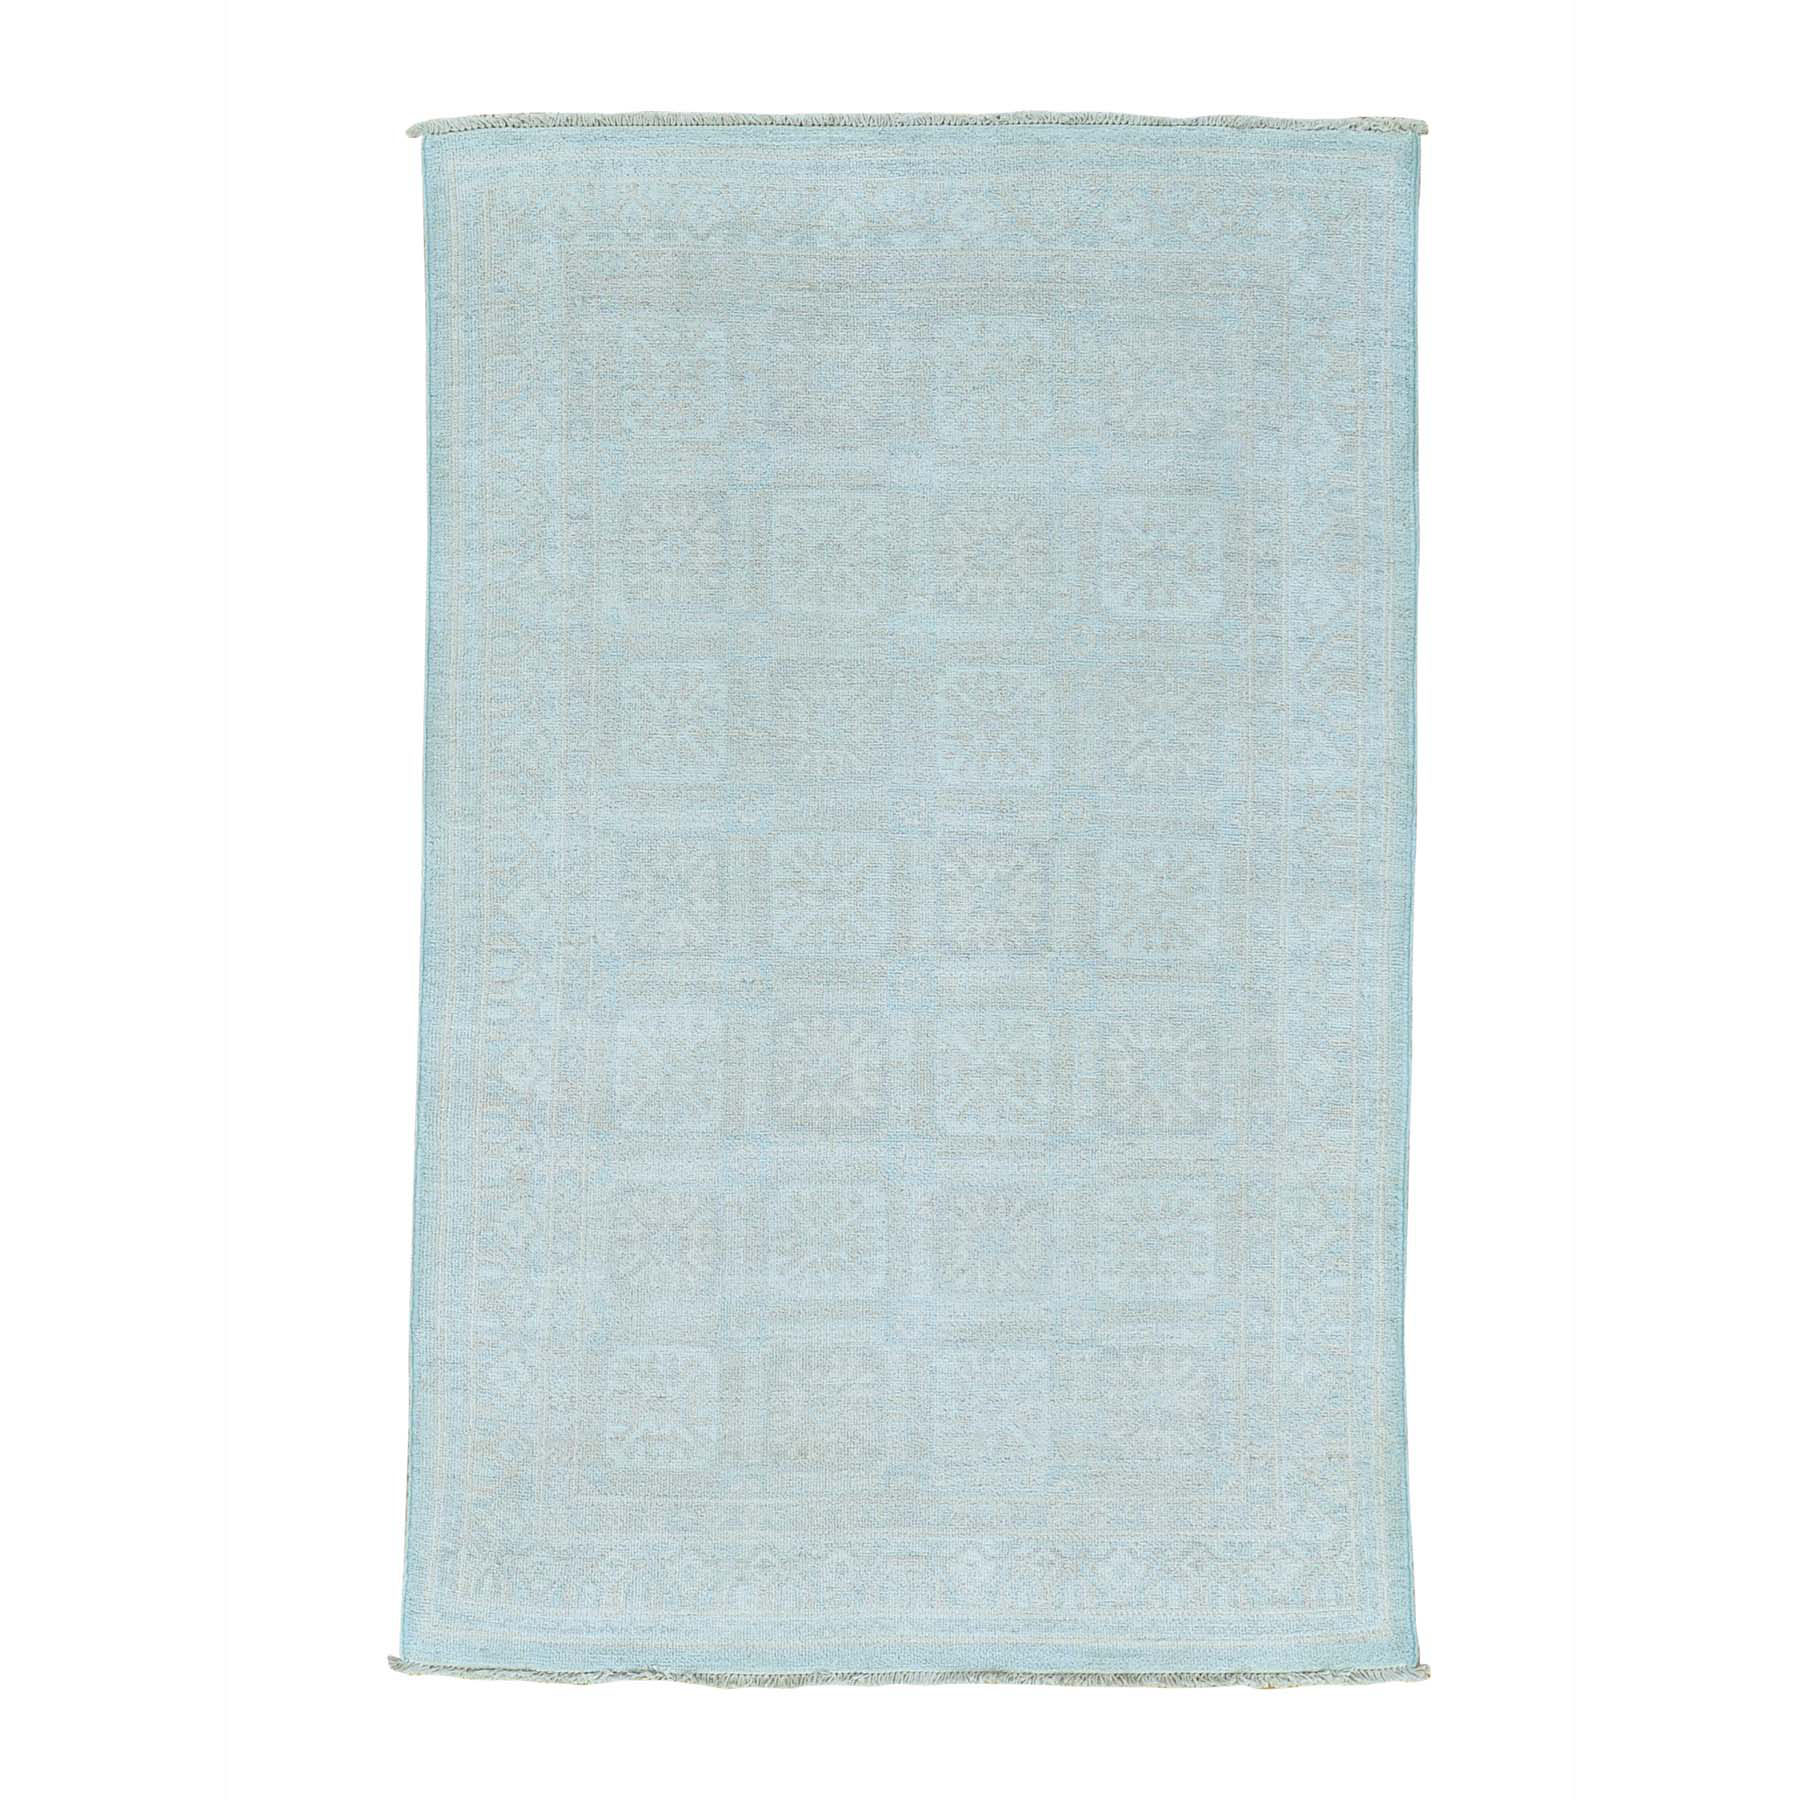 Khotan and SamarkandRugs ORC229131